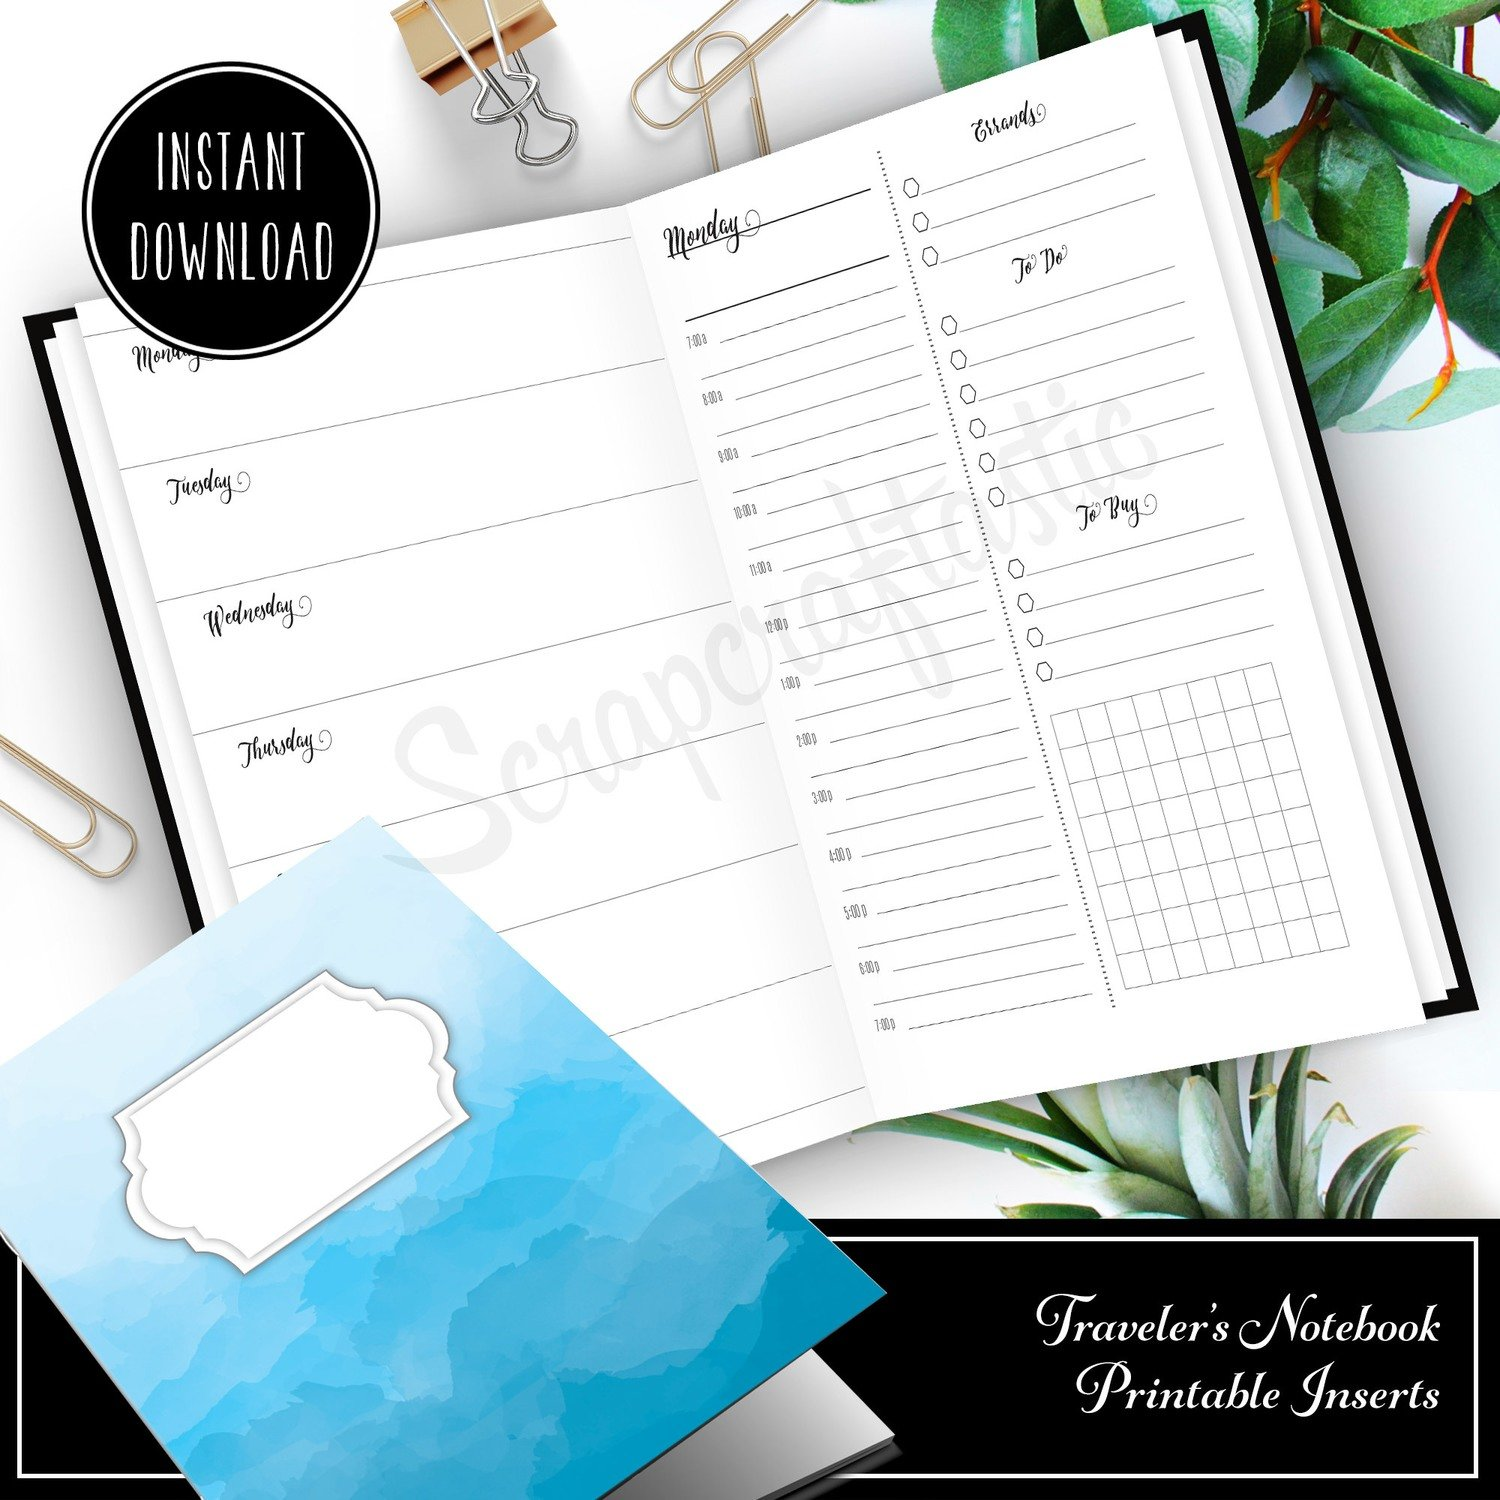 Full Month Notebook: Extended Daily Personal Size Printable Traveler's Notebook Insert with MO2P, WO1P Horizontal and DO1P Daily Schedule Pages